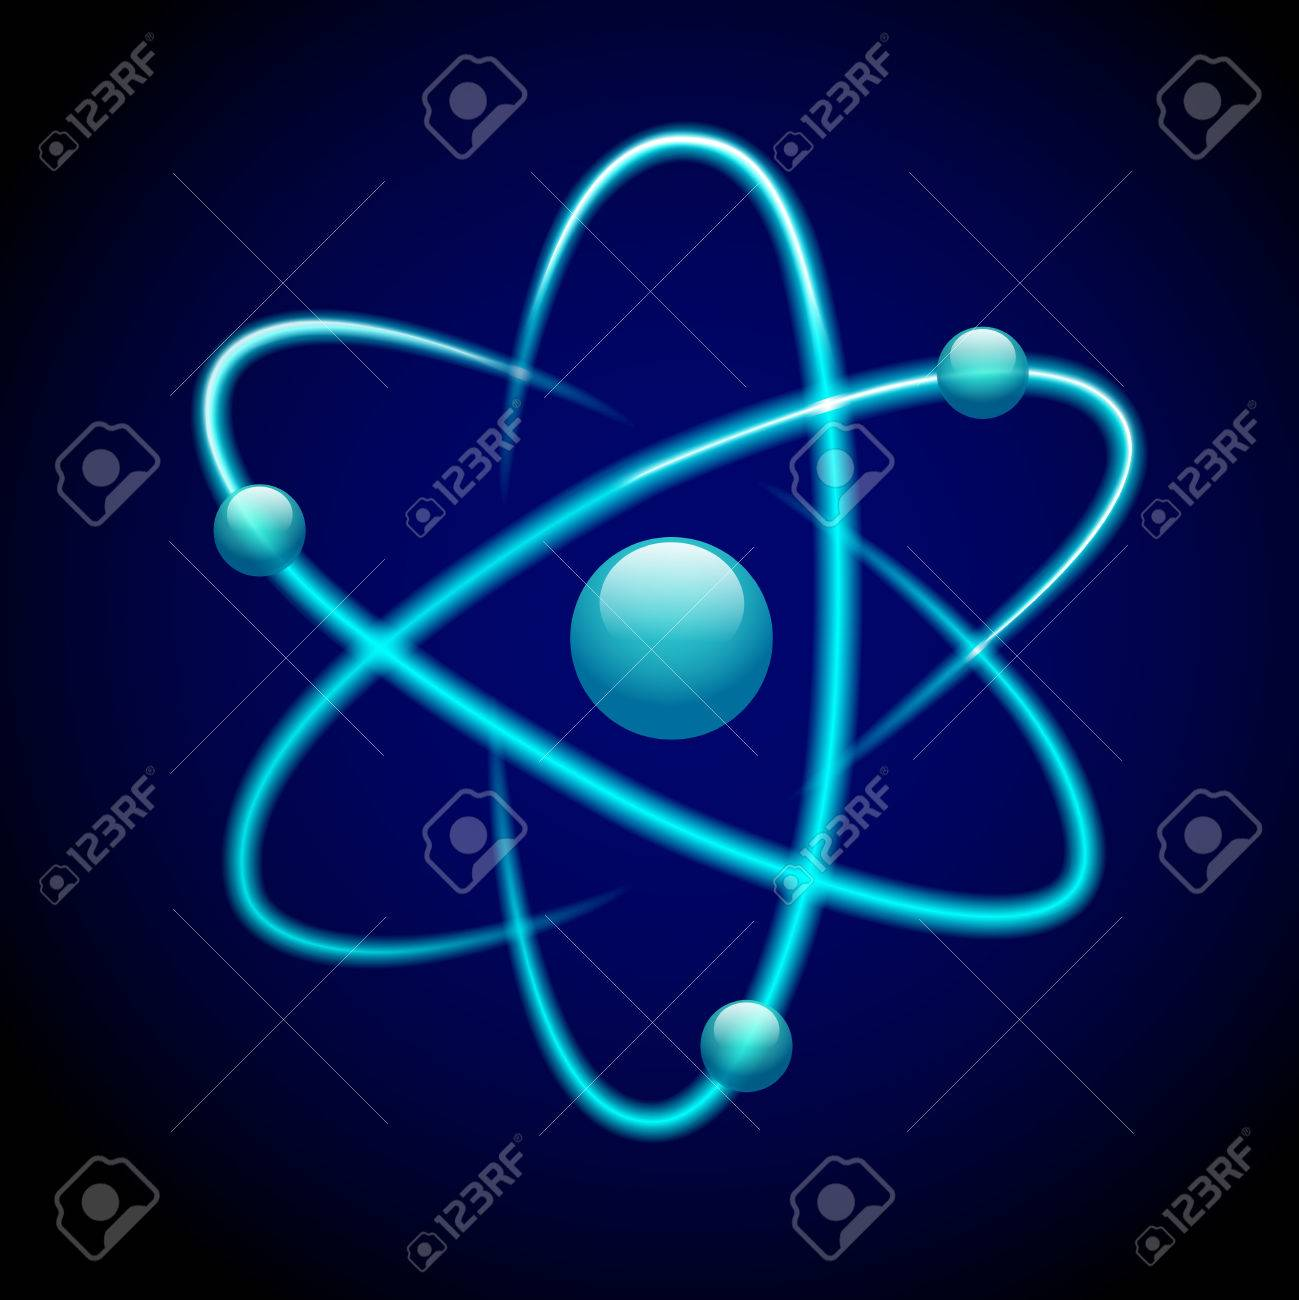 Atom 3d blue abstract nuclear structure science model symbol atom 3d blue abstract nuclear structure science model symbol illustration stock vector 27146022 ccuart